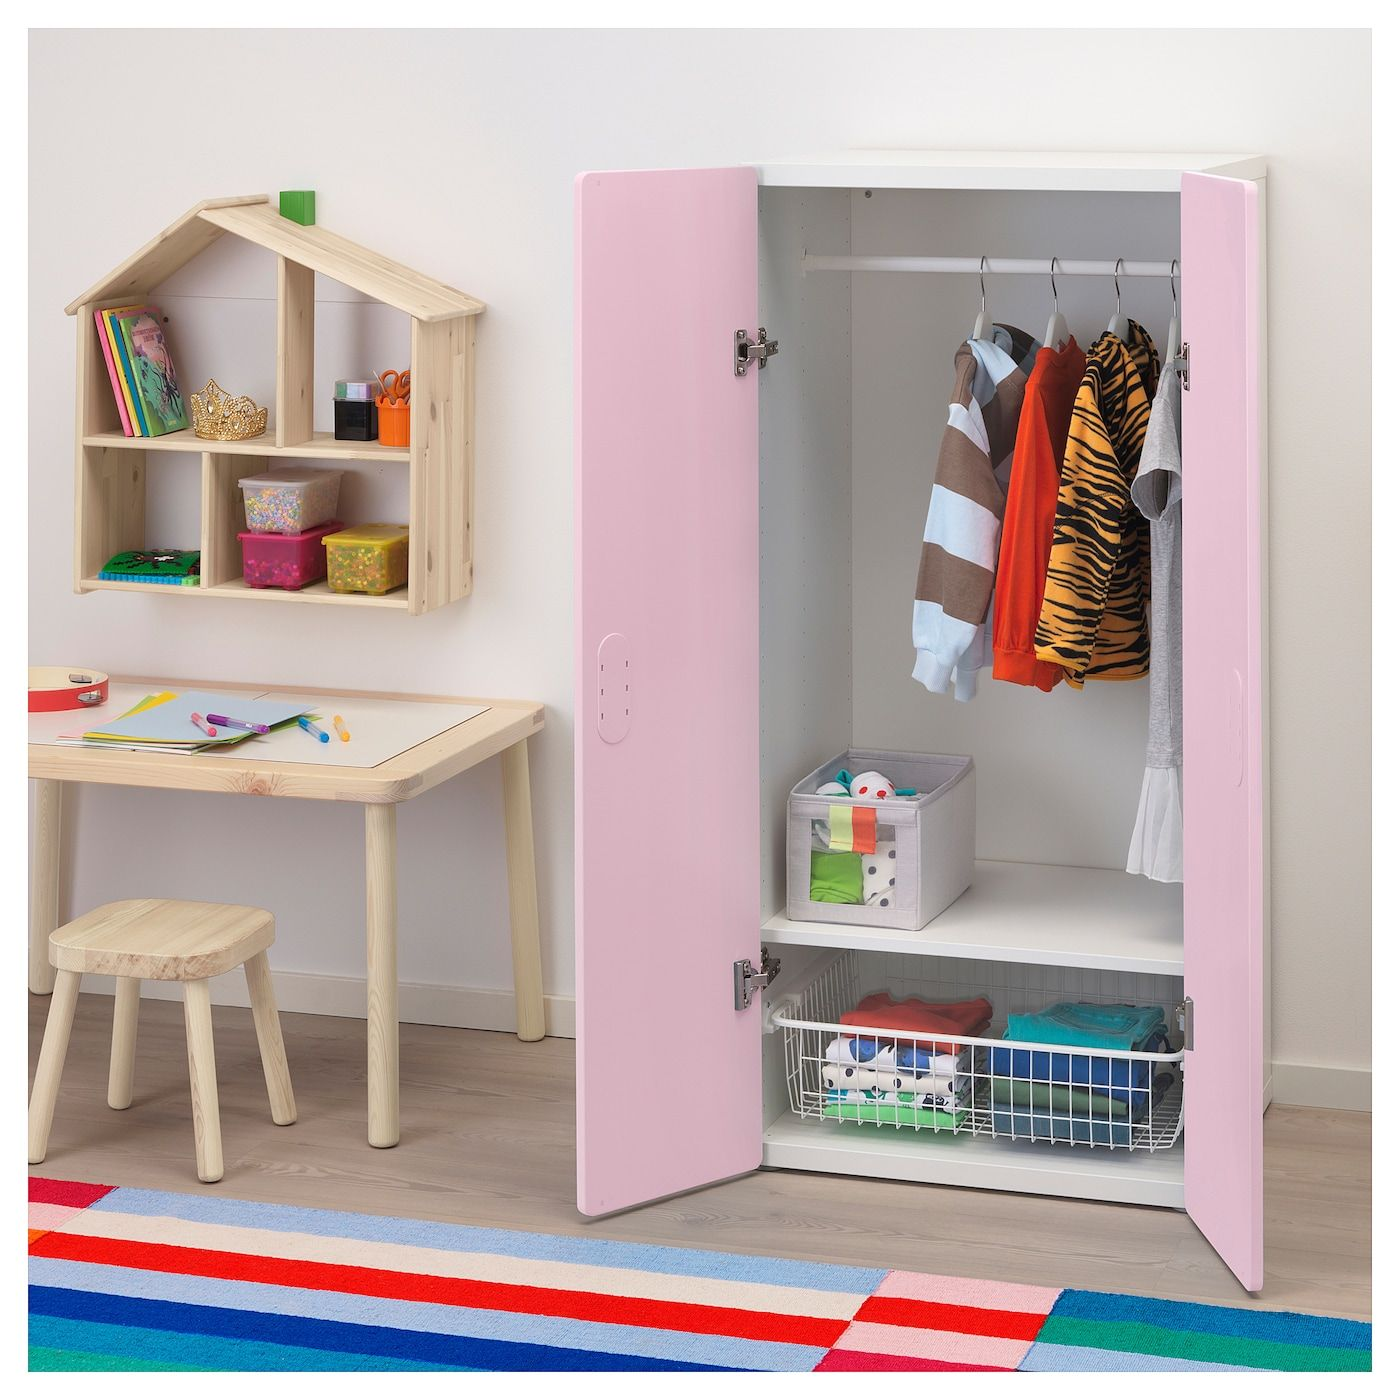 Ikea Kinderzimmer Stuva Planer Stuva Fritids Wardrobe White Light Pink Bedroom Ideas